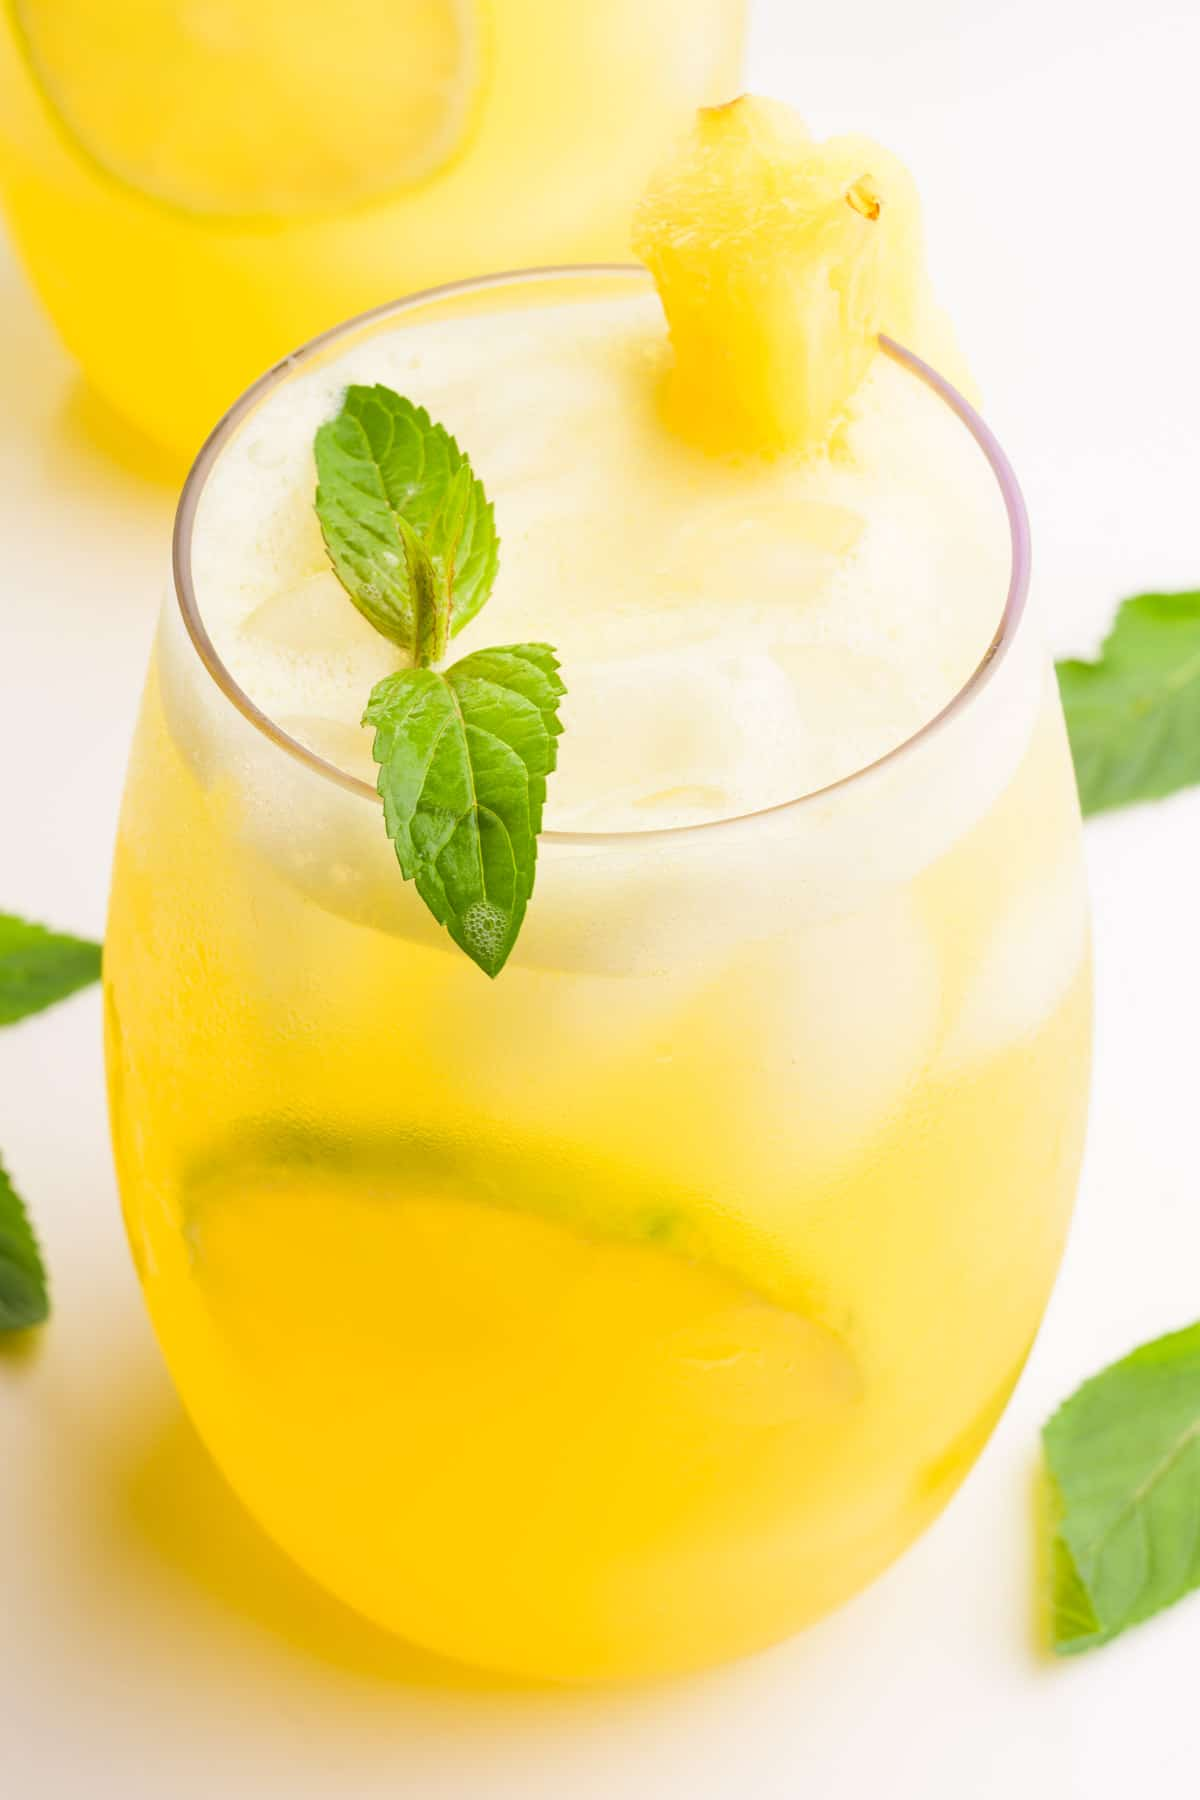 A glass holds pineapple agua Fresca with ice cubes and lime slices. There are mint sprigs in the glass and around it. There's another glass in the background.